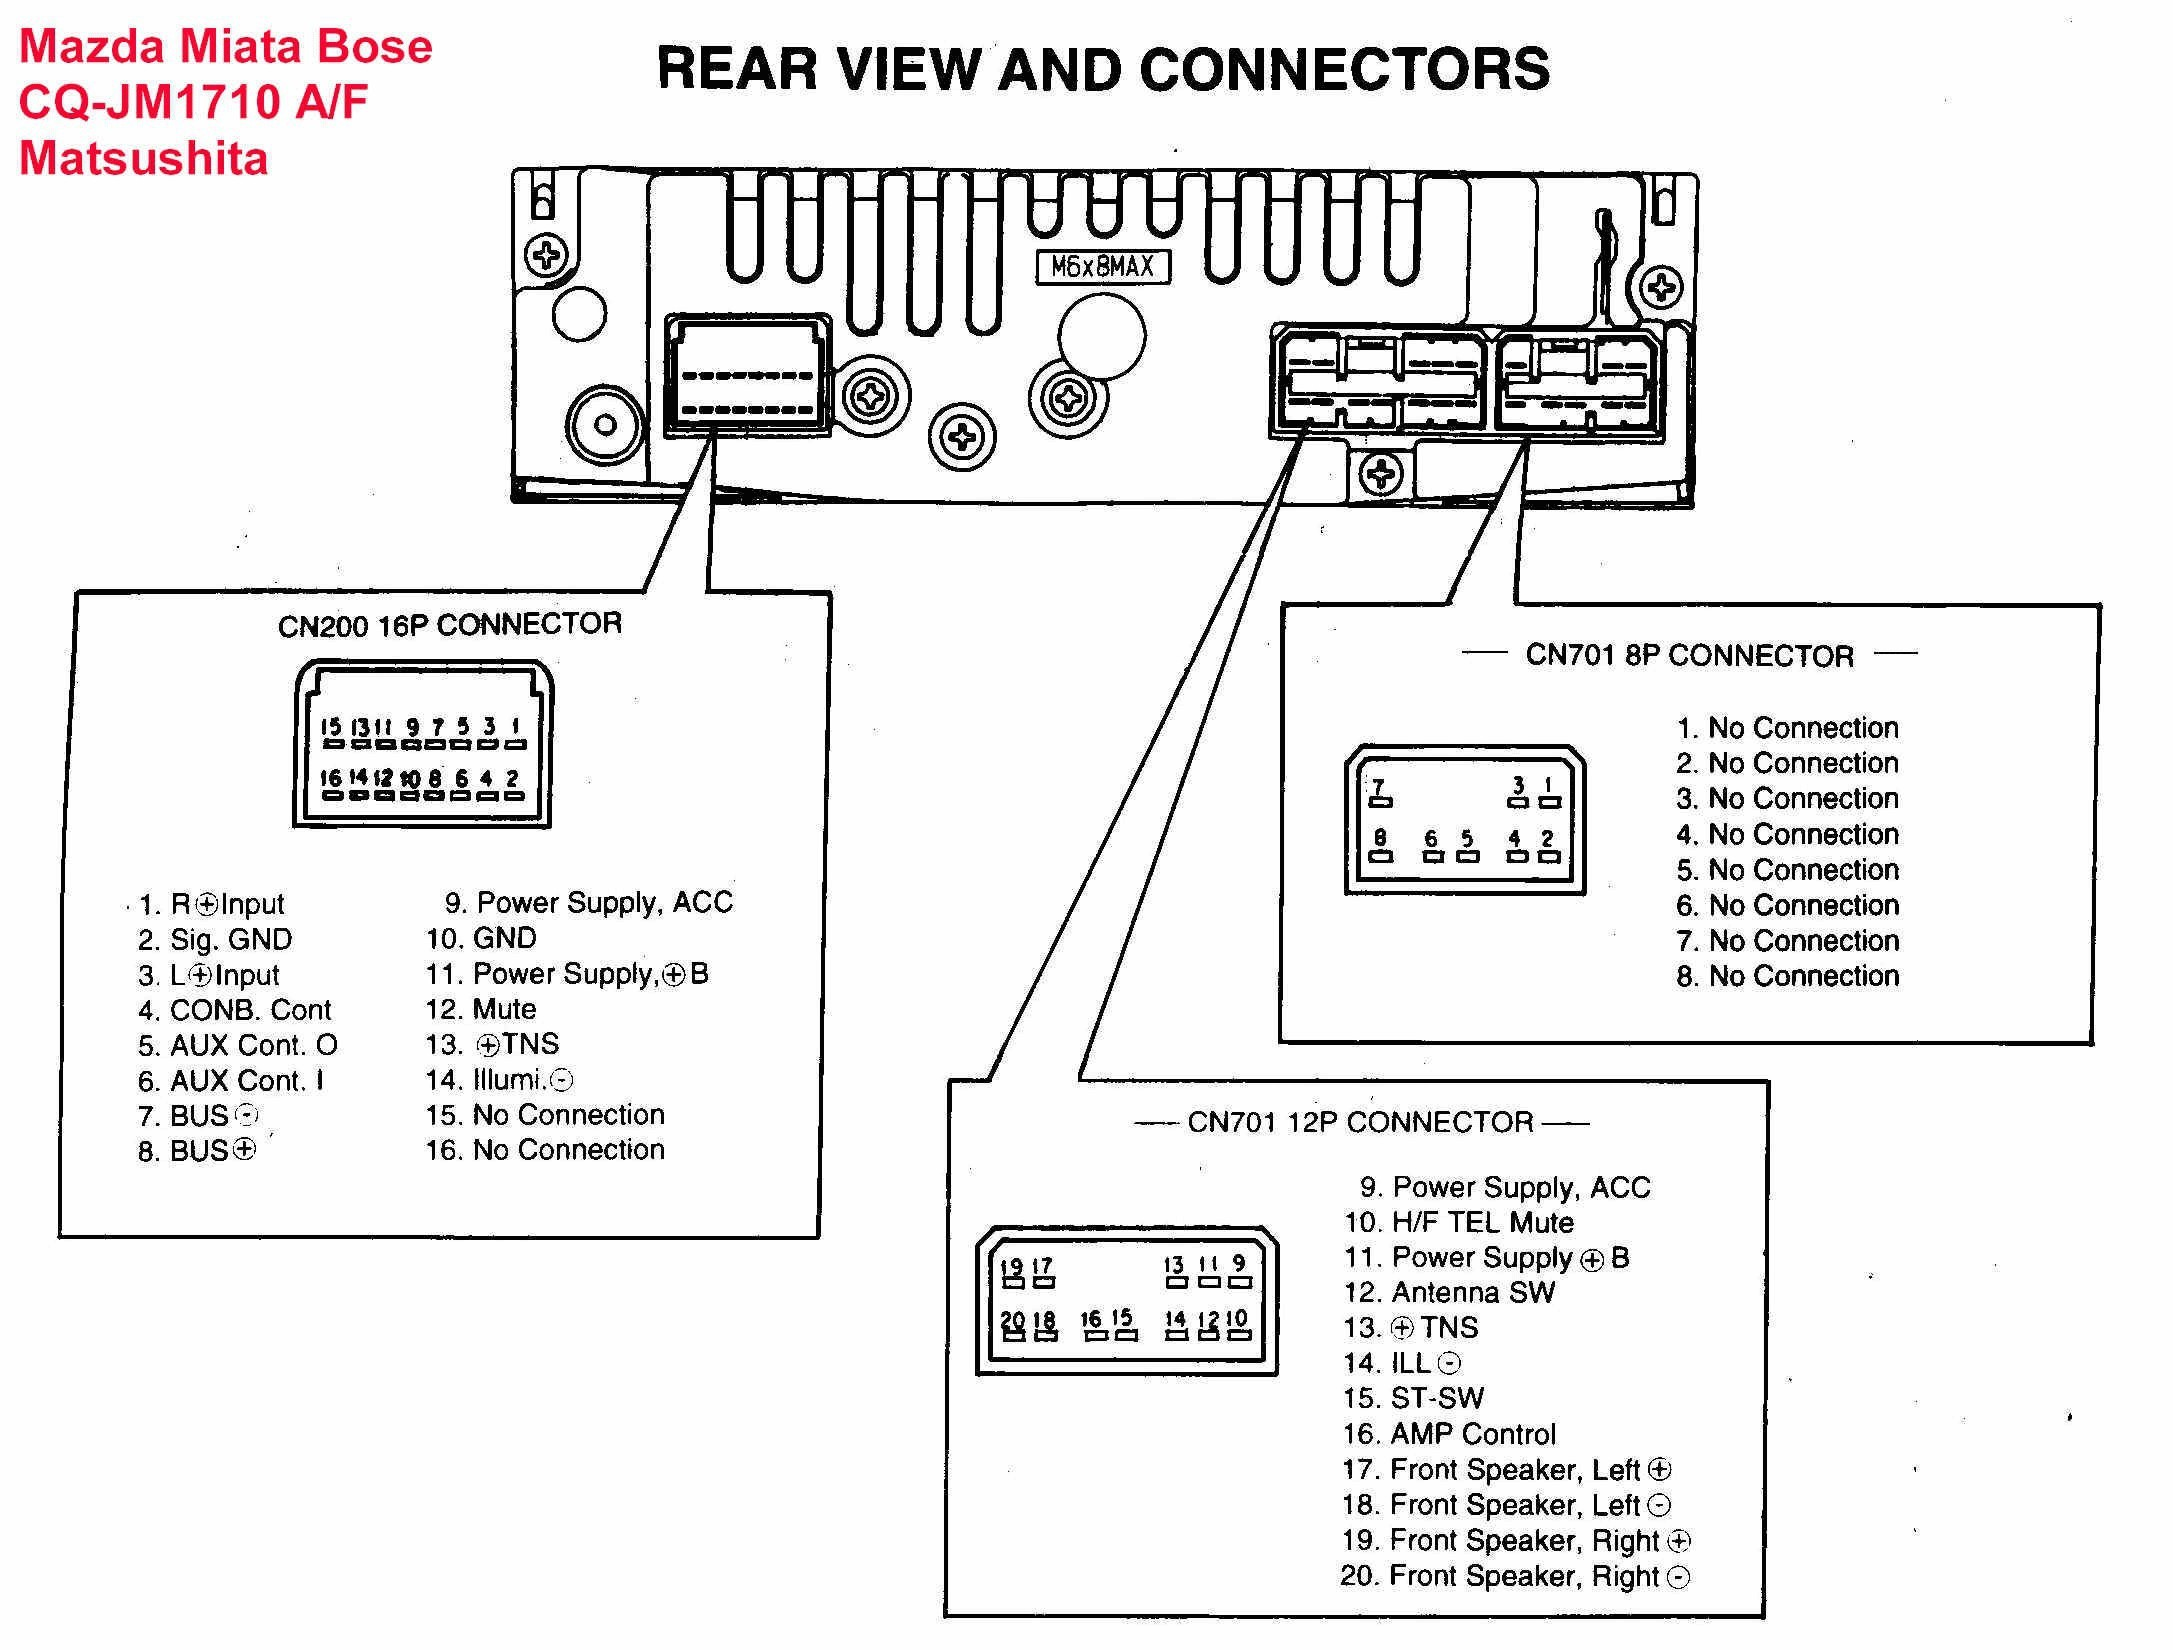 3 Wire Circuit Diagram New Stereo Wiring Diagram Diagram Of 3 Wire Circuit  Diagram Nema 5